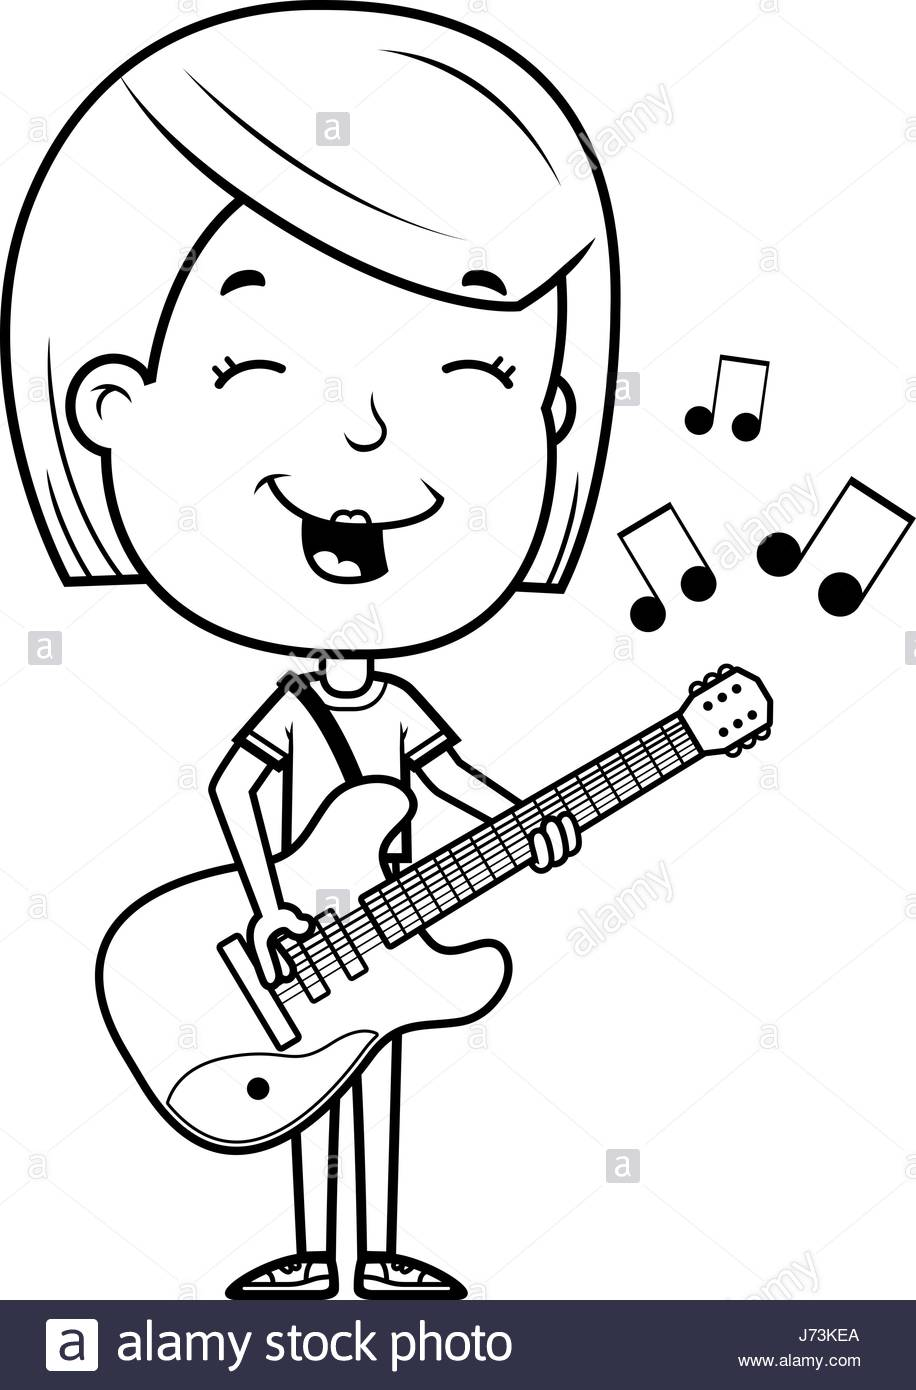 916x1390 A Cartoon Illustration Of A Teenage Girl Playing An Electric